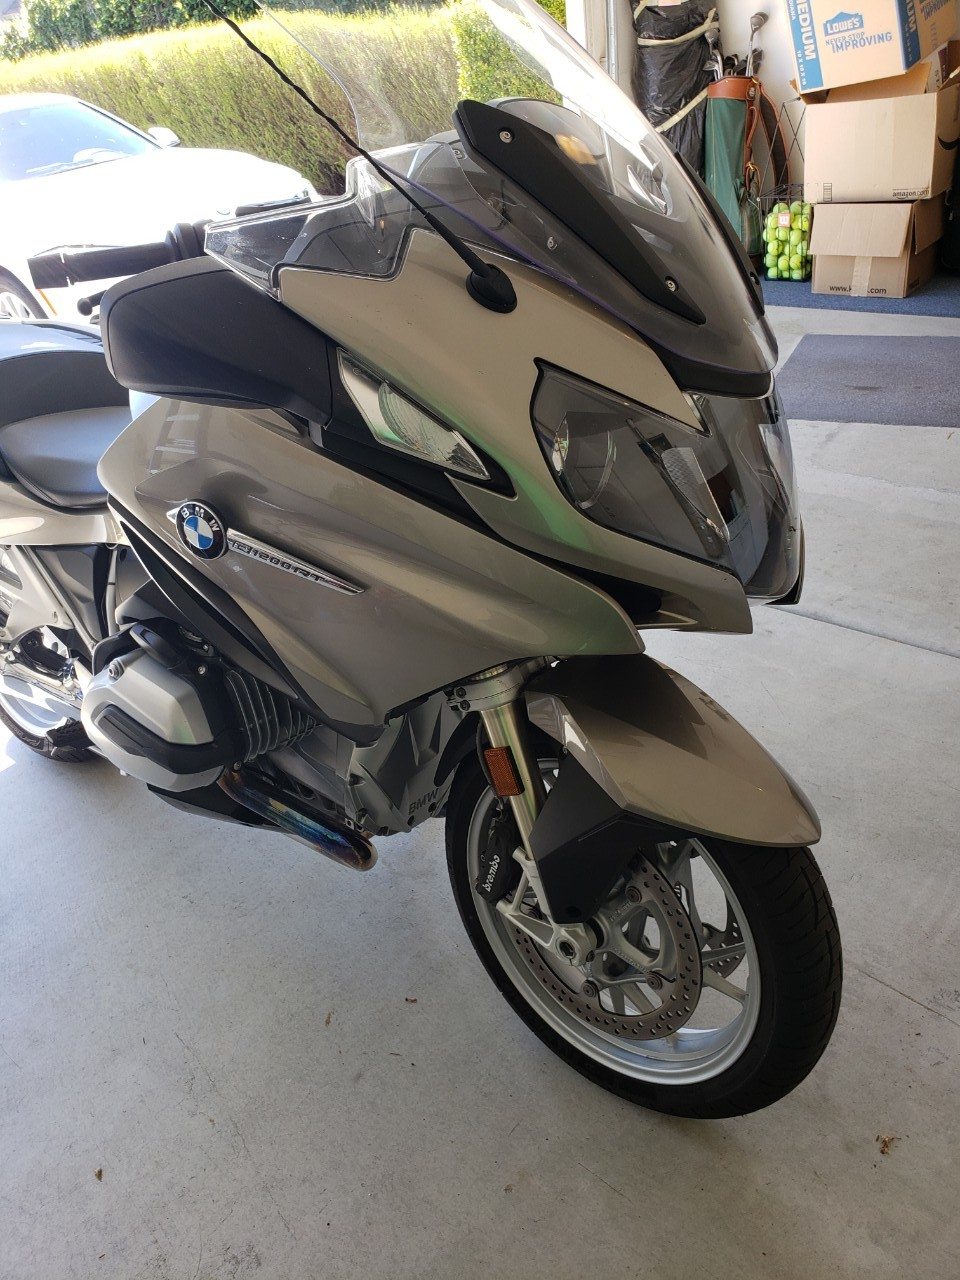 Murrieta, CA - S For Sale - S Motorcycle,Trailers - Cycle Trader